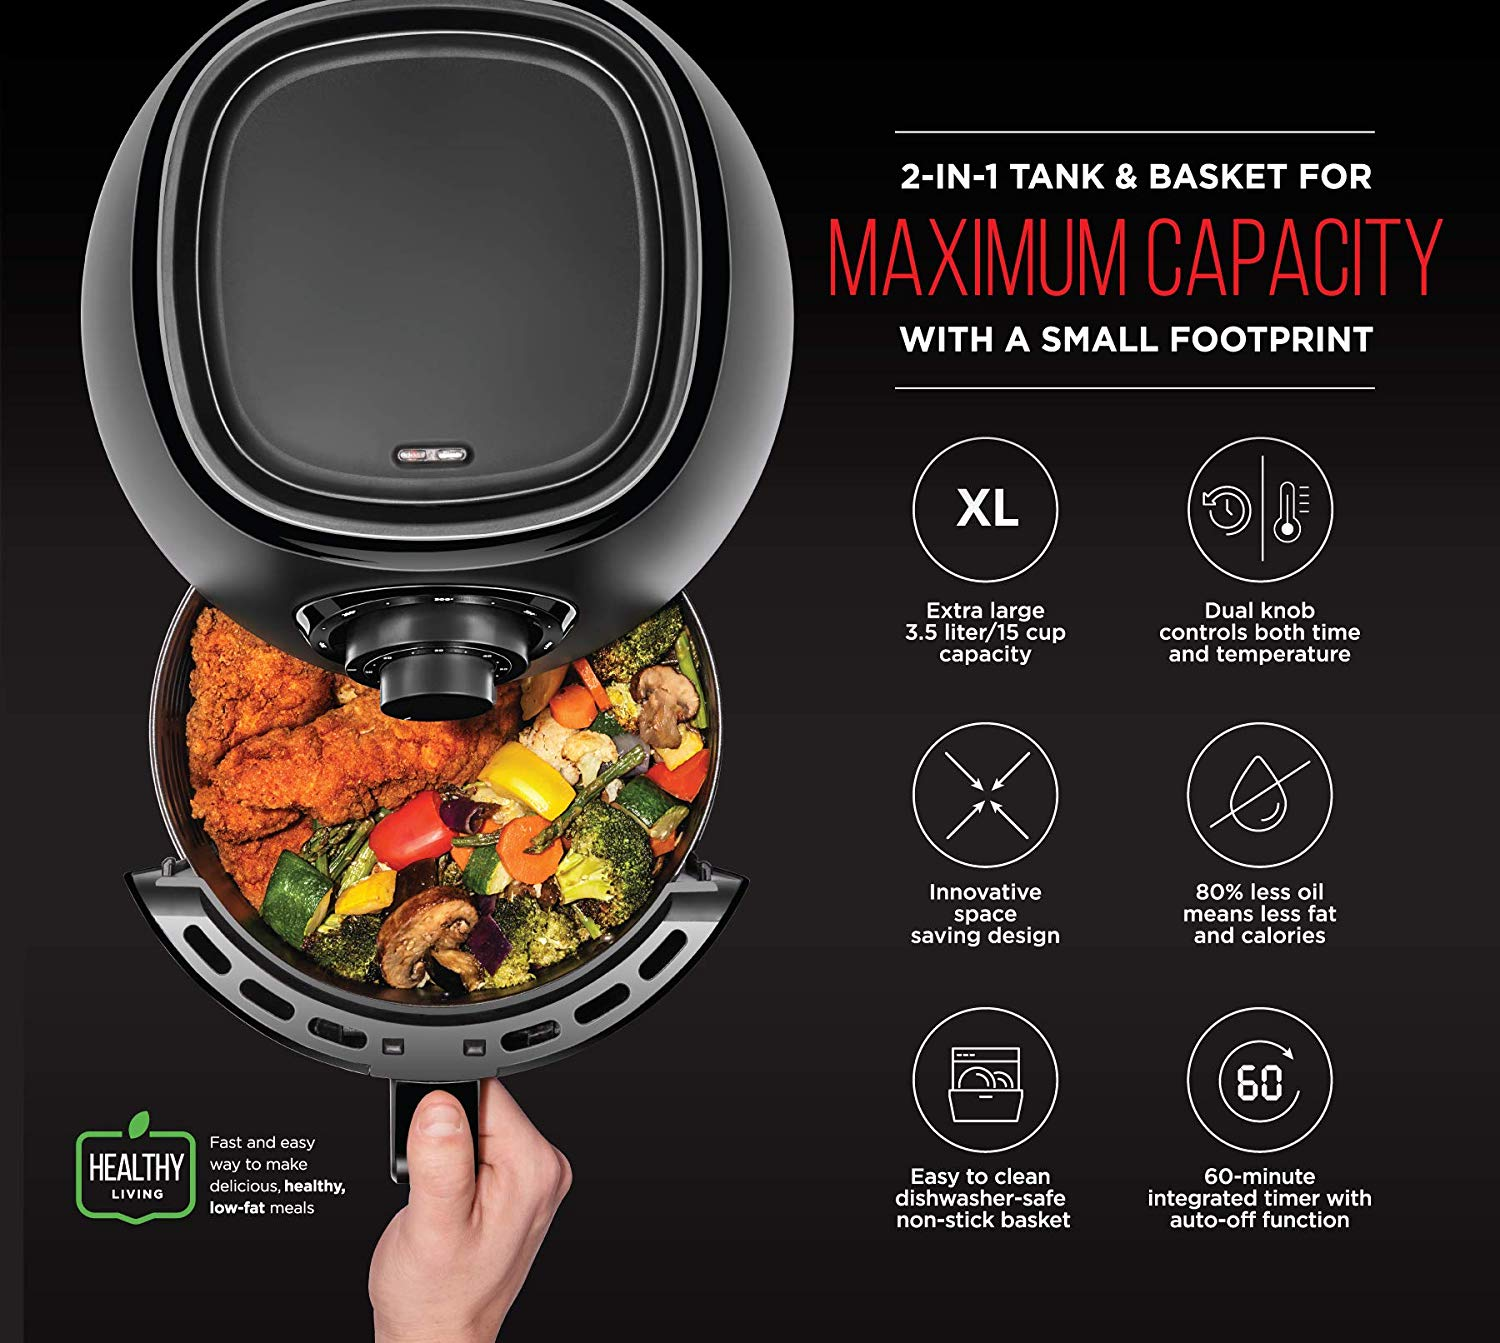 Chefman TurboFry 3.6 Quart Air Fryer Oven w/ Dishwasher Safe Basket and Dual Control Temperature, 60 Minute Timer & 15 Cup Capacity, BPA-Free, Matte Black, Healthy Frying Cookbook Included